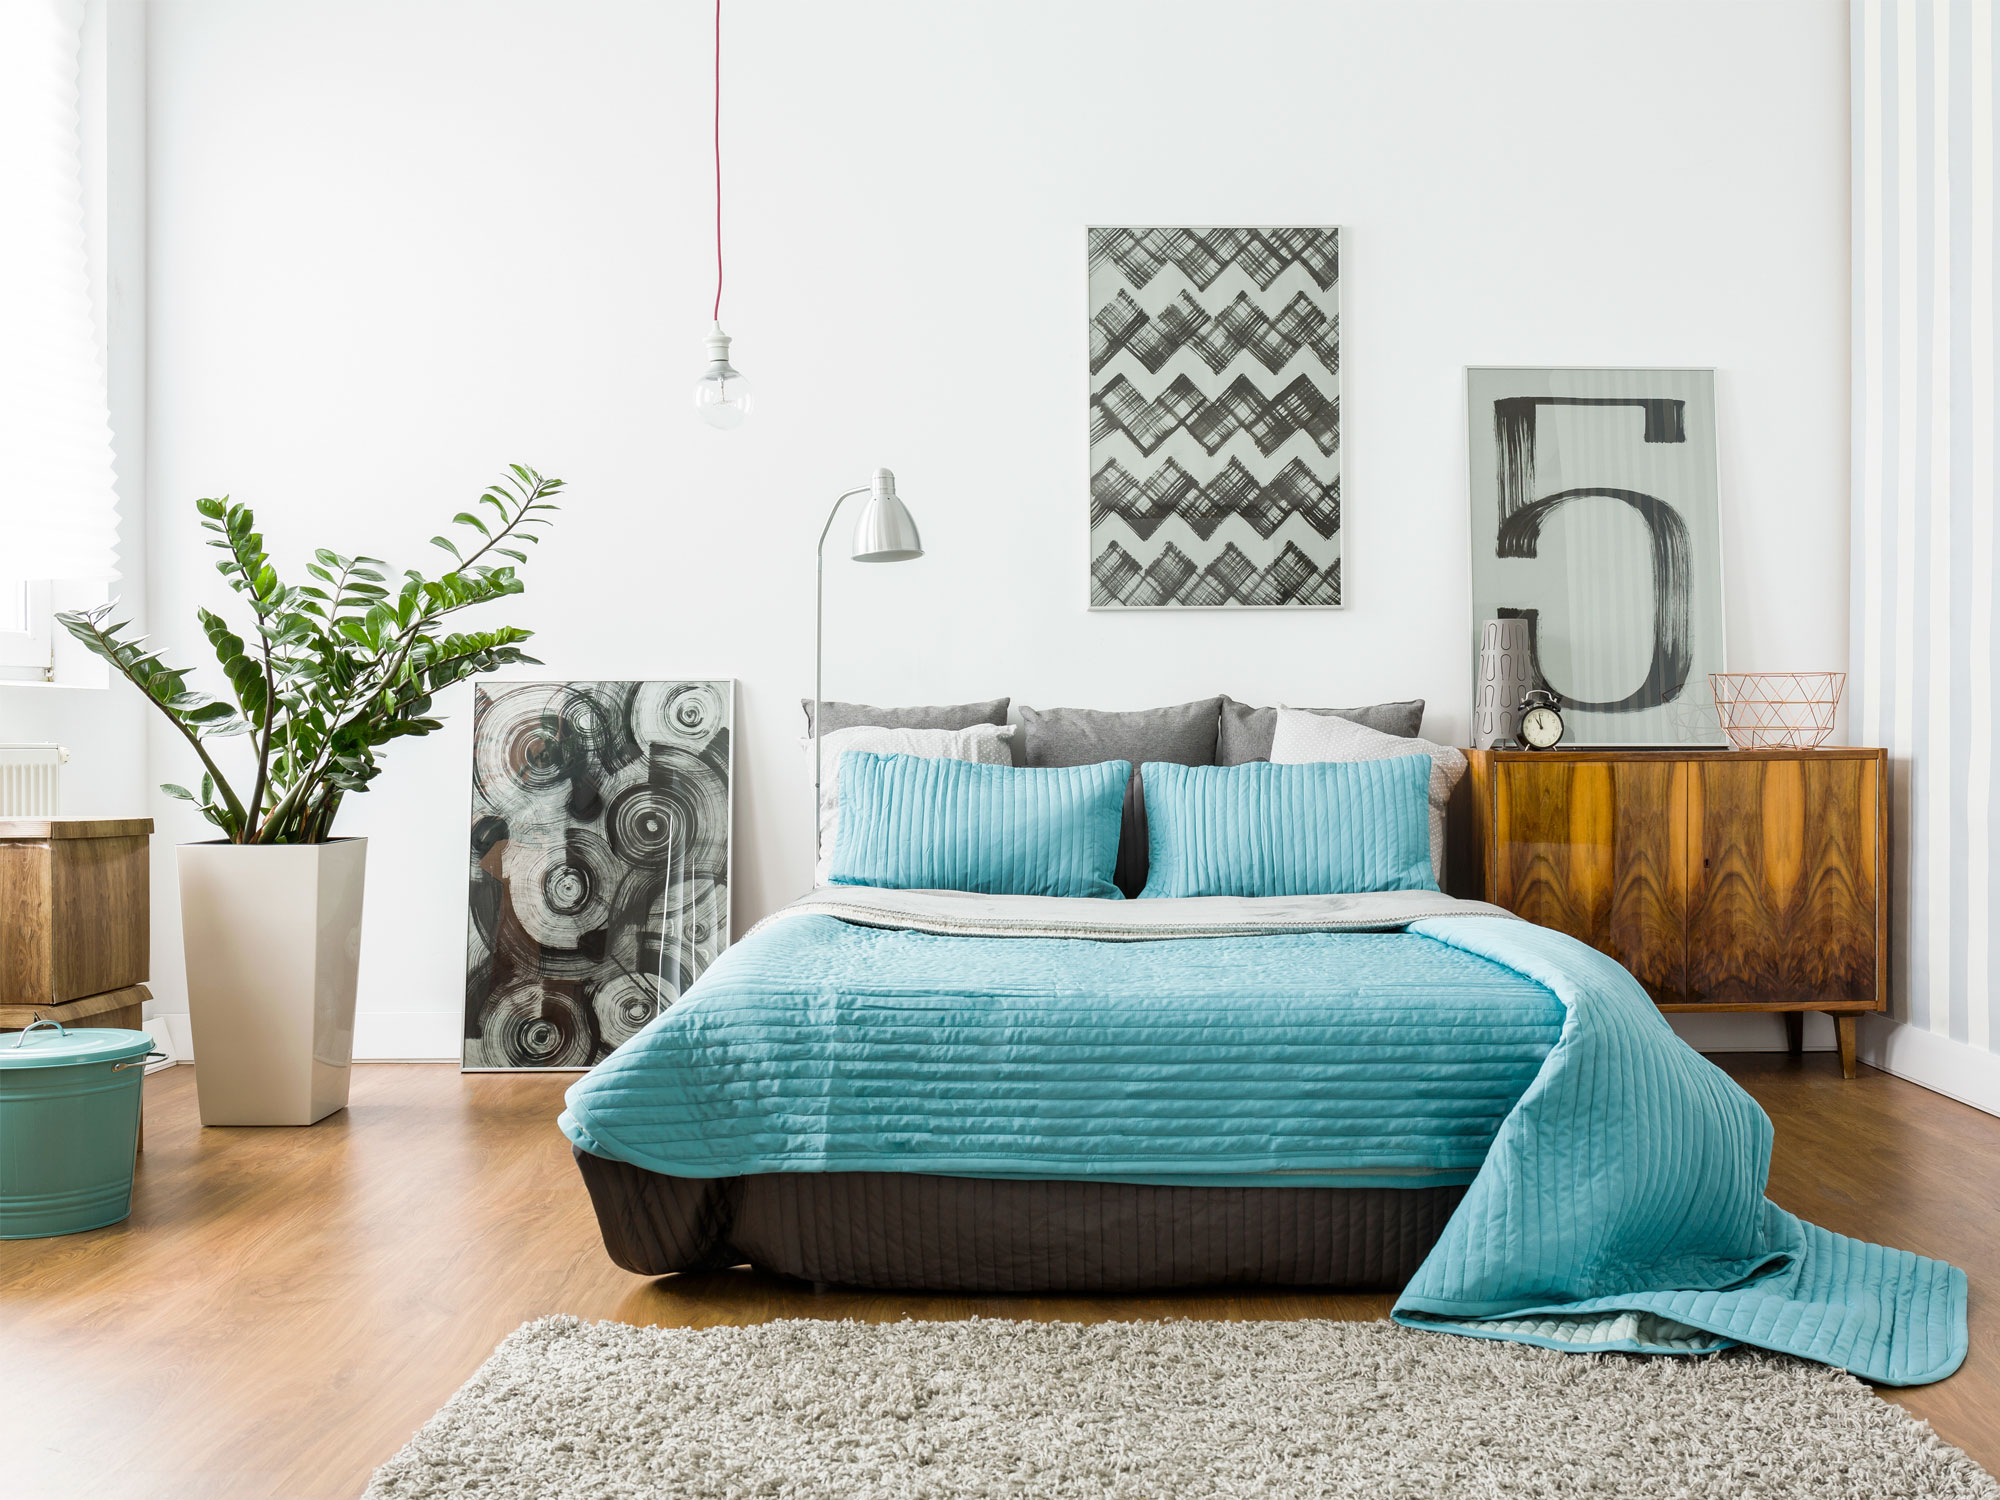 Truly an outstanding combination with beach-color blue meshing with natural wood and a plant to lighten the mood. Studies have shown that having plants in your home can act as a natural stress reliever.